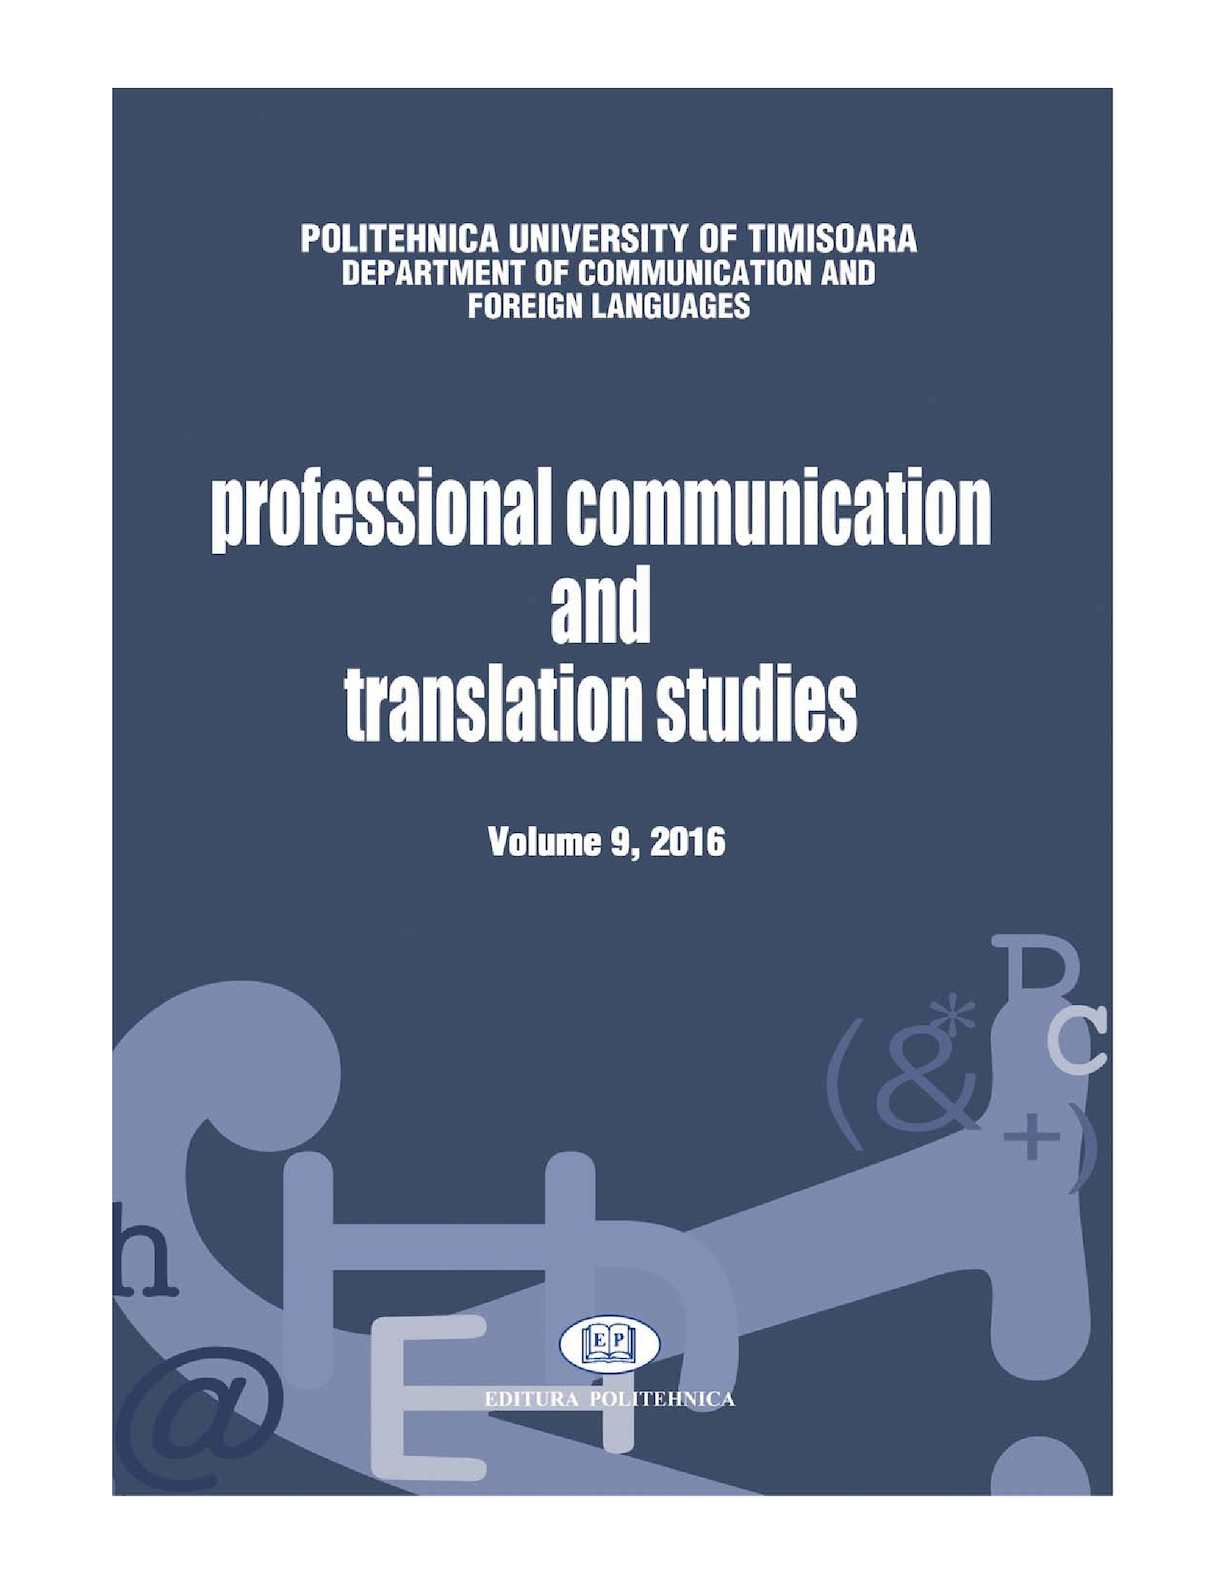 Duschen Translate Englisch Calaméo Professional Communication And Translation Studies 9 2016